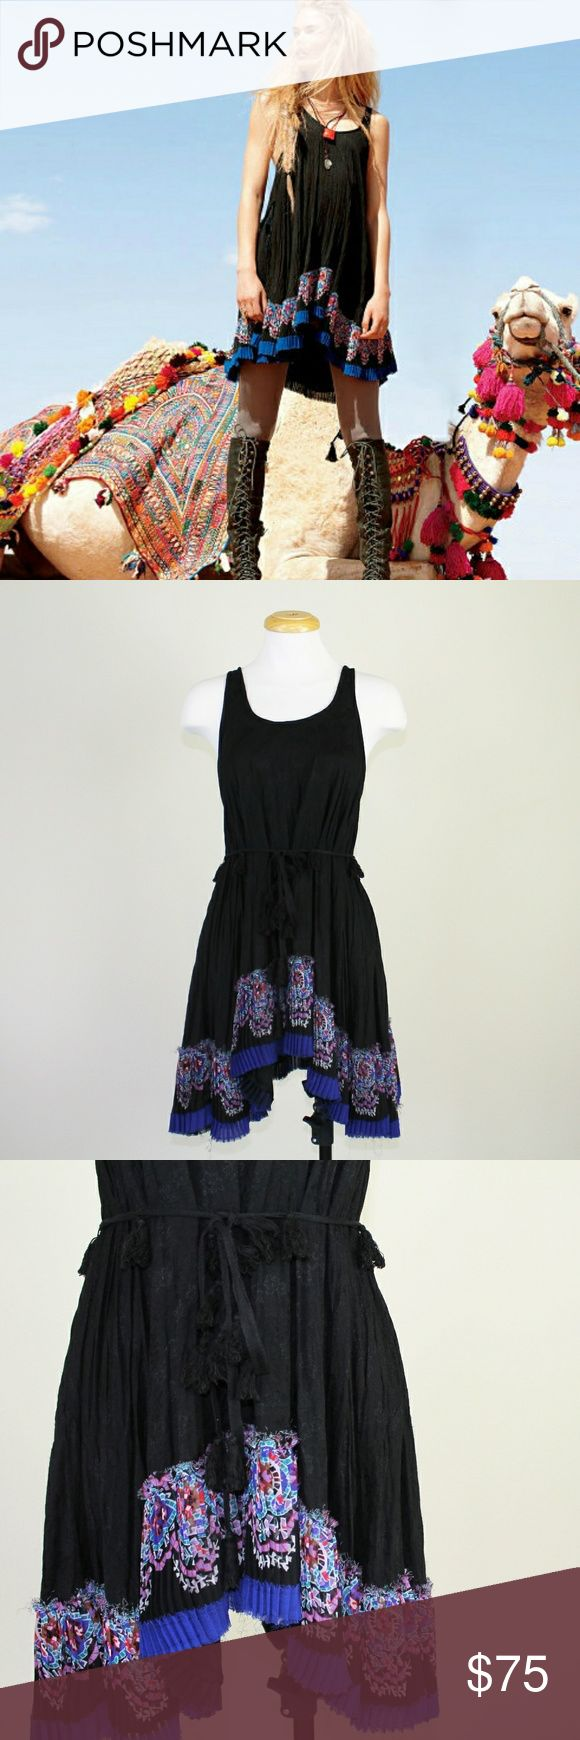 NWOT Free People FP ONE Tiered Tassel Dress Gorgeous boho tiered mini dress from Free People FP ONE in like new condition. Features raw, asymmetrical, pleated, floral paisley hem with tassel belt. Absolutely beautiful dress! Perfect for festivals!  Please let me know if you have questions or need more pictures. I will consider all reasonable offers, but no trades, please. Free People Dresses Mini